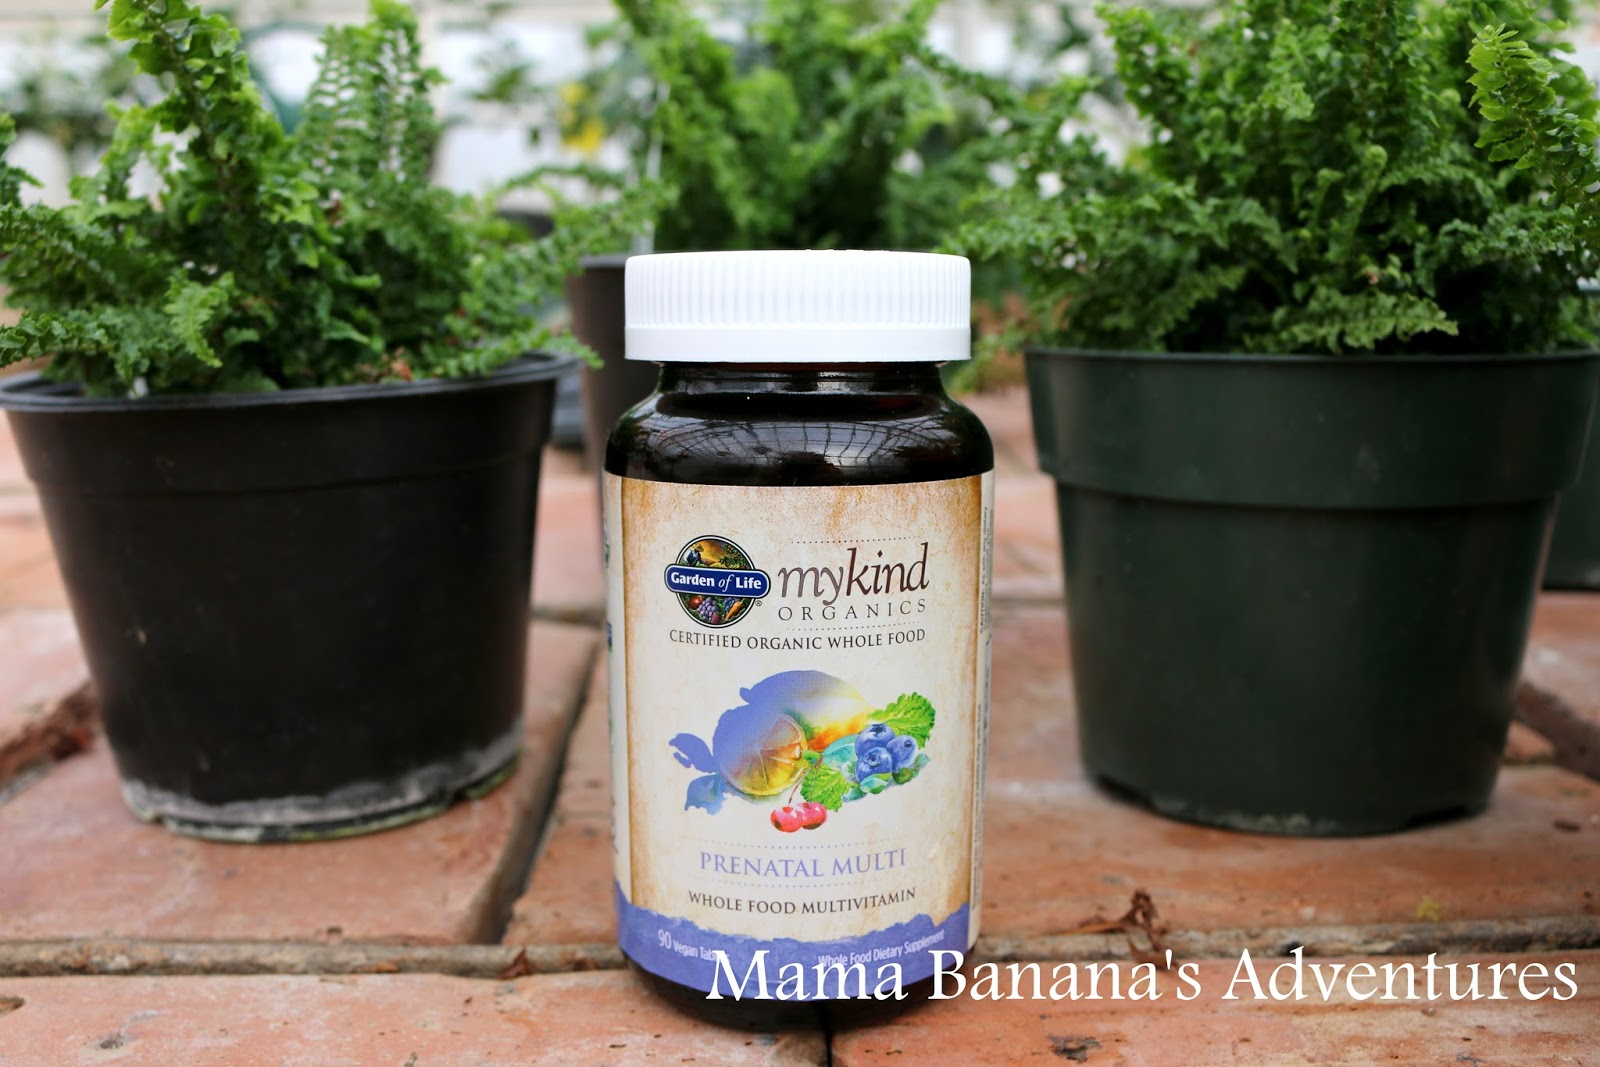 I Like The Garden Of Life Mykind Organics Prenatals Because Wellu2026theyu0027re  Organic! As In Certified USDA Organic, Vegan And Non GMO Project Verified.